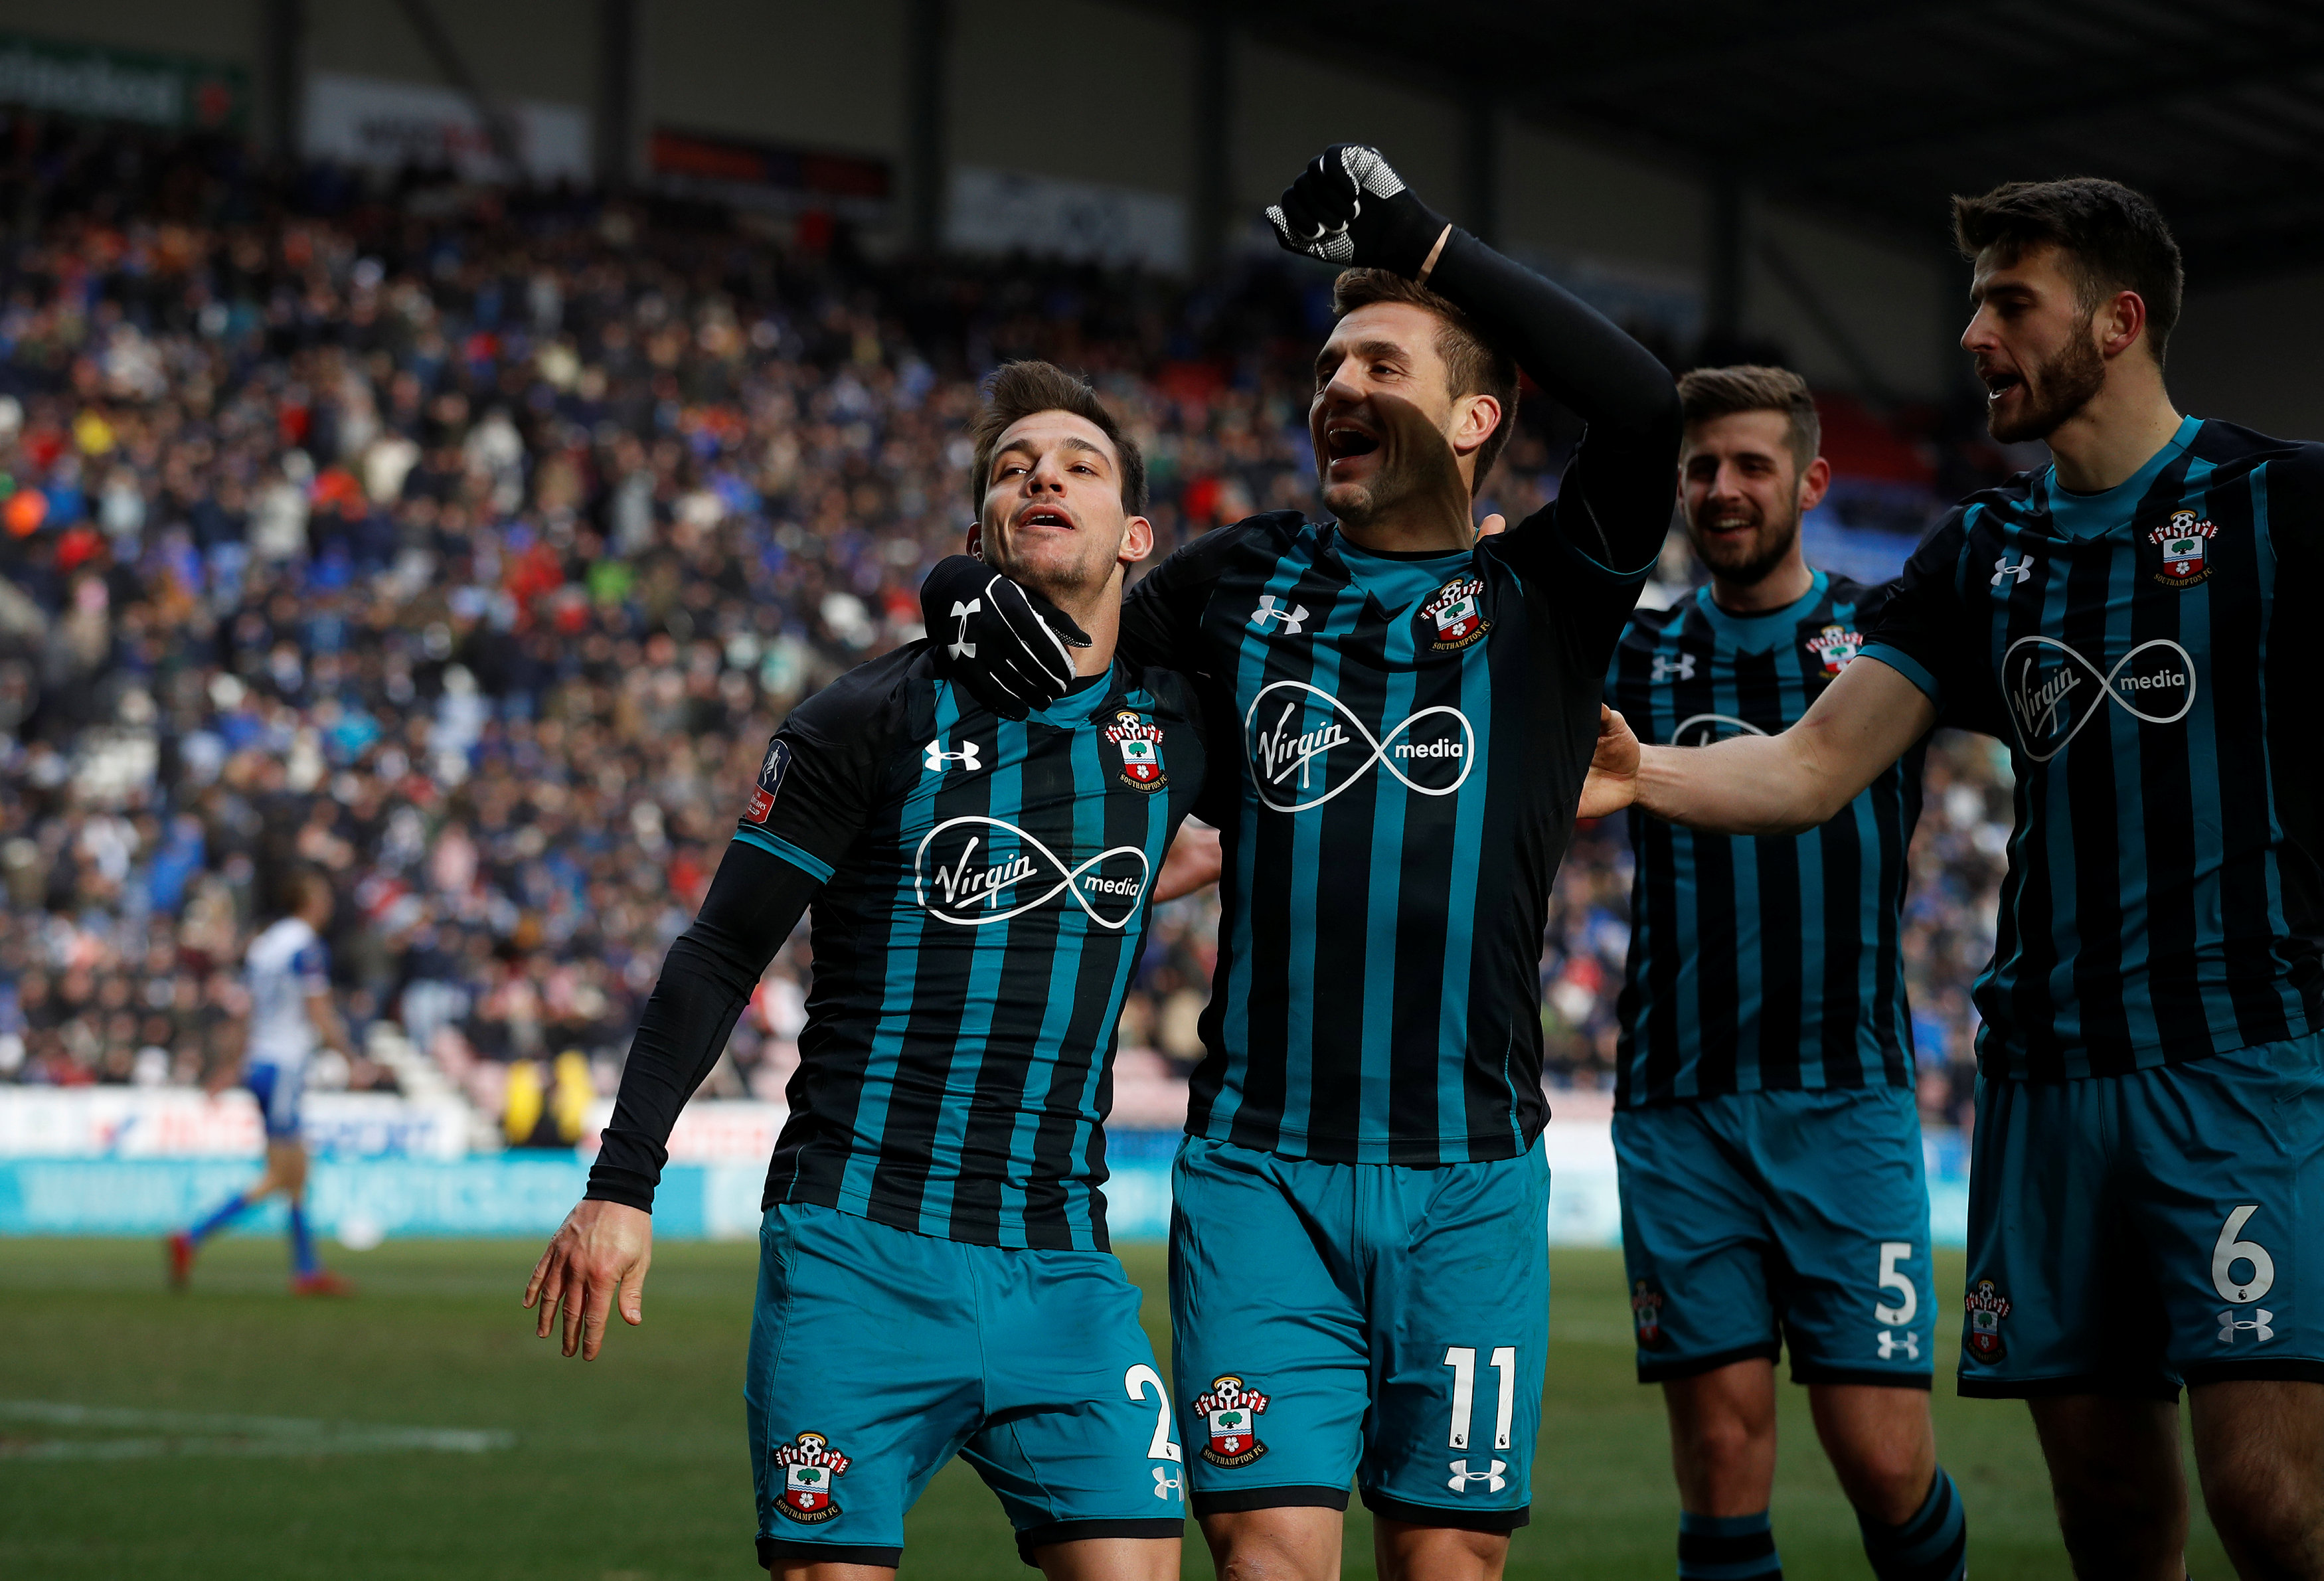 Soccer Football - FA Cup Quarter Final - Wigan Athletic vs Southampton - DW Stadium, Wigan, Britain - March 18, 2018   Southampton's Cedric Soares celebrates scoring their second goal with Dusan Tadic and teammates   REUTERS/Phil Noble